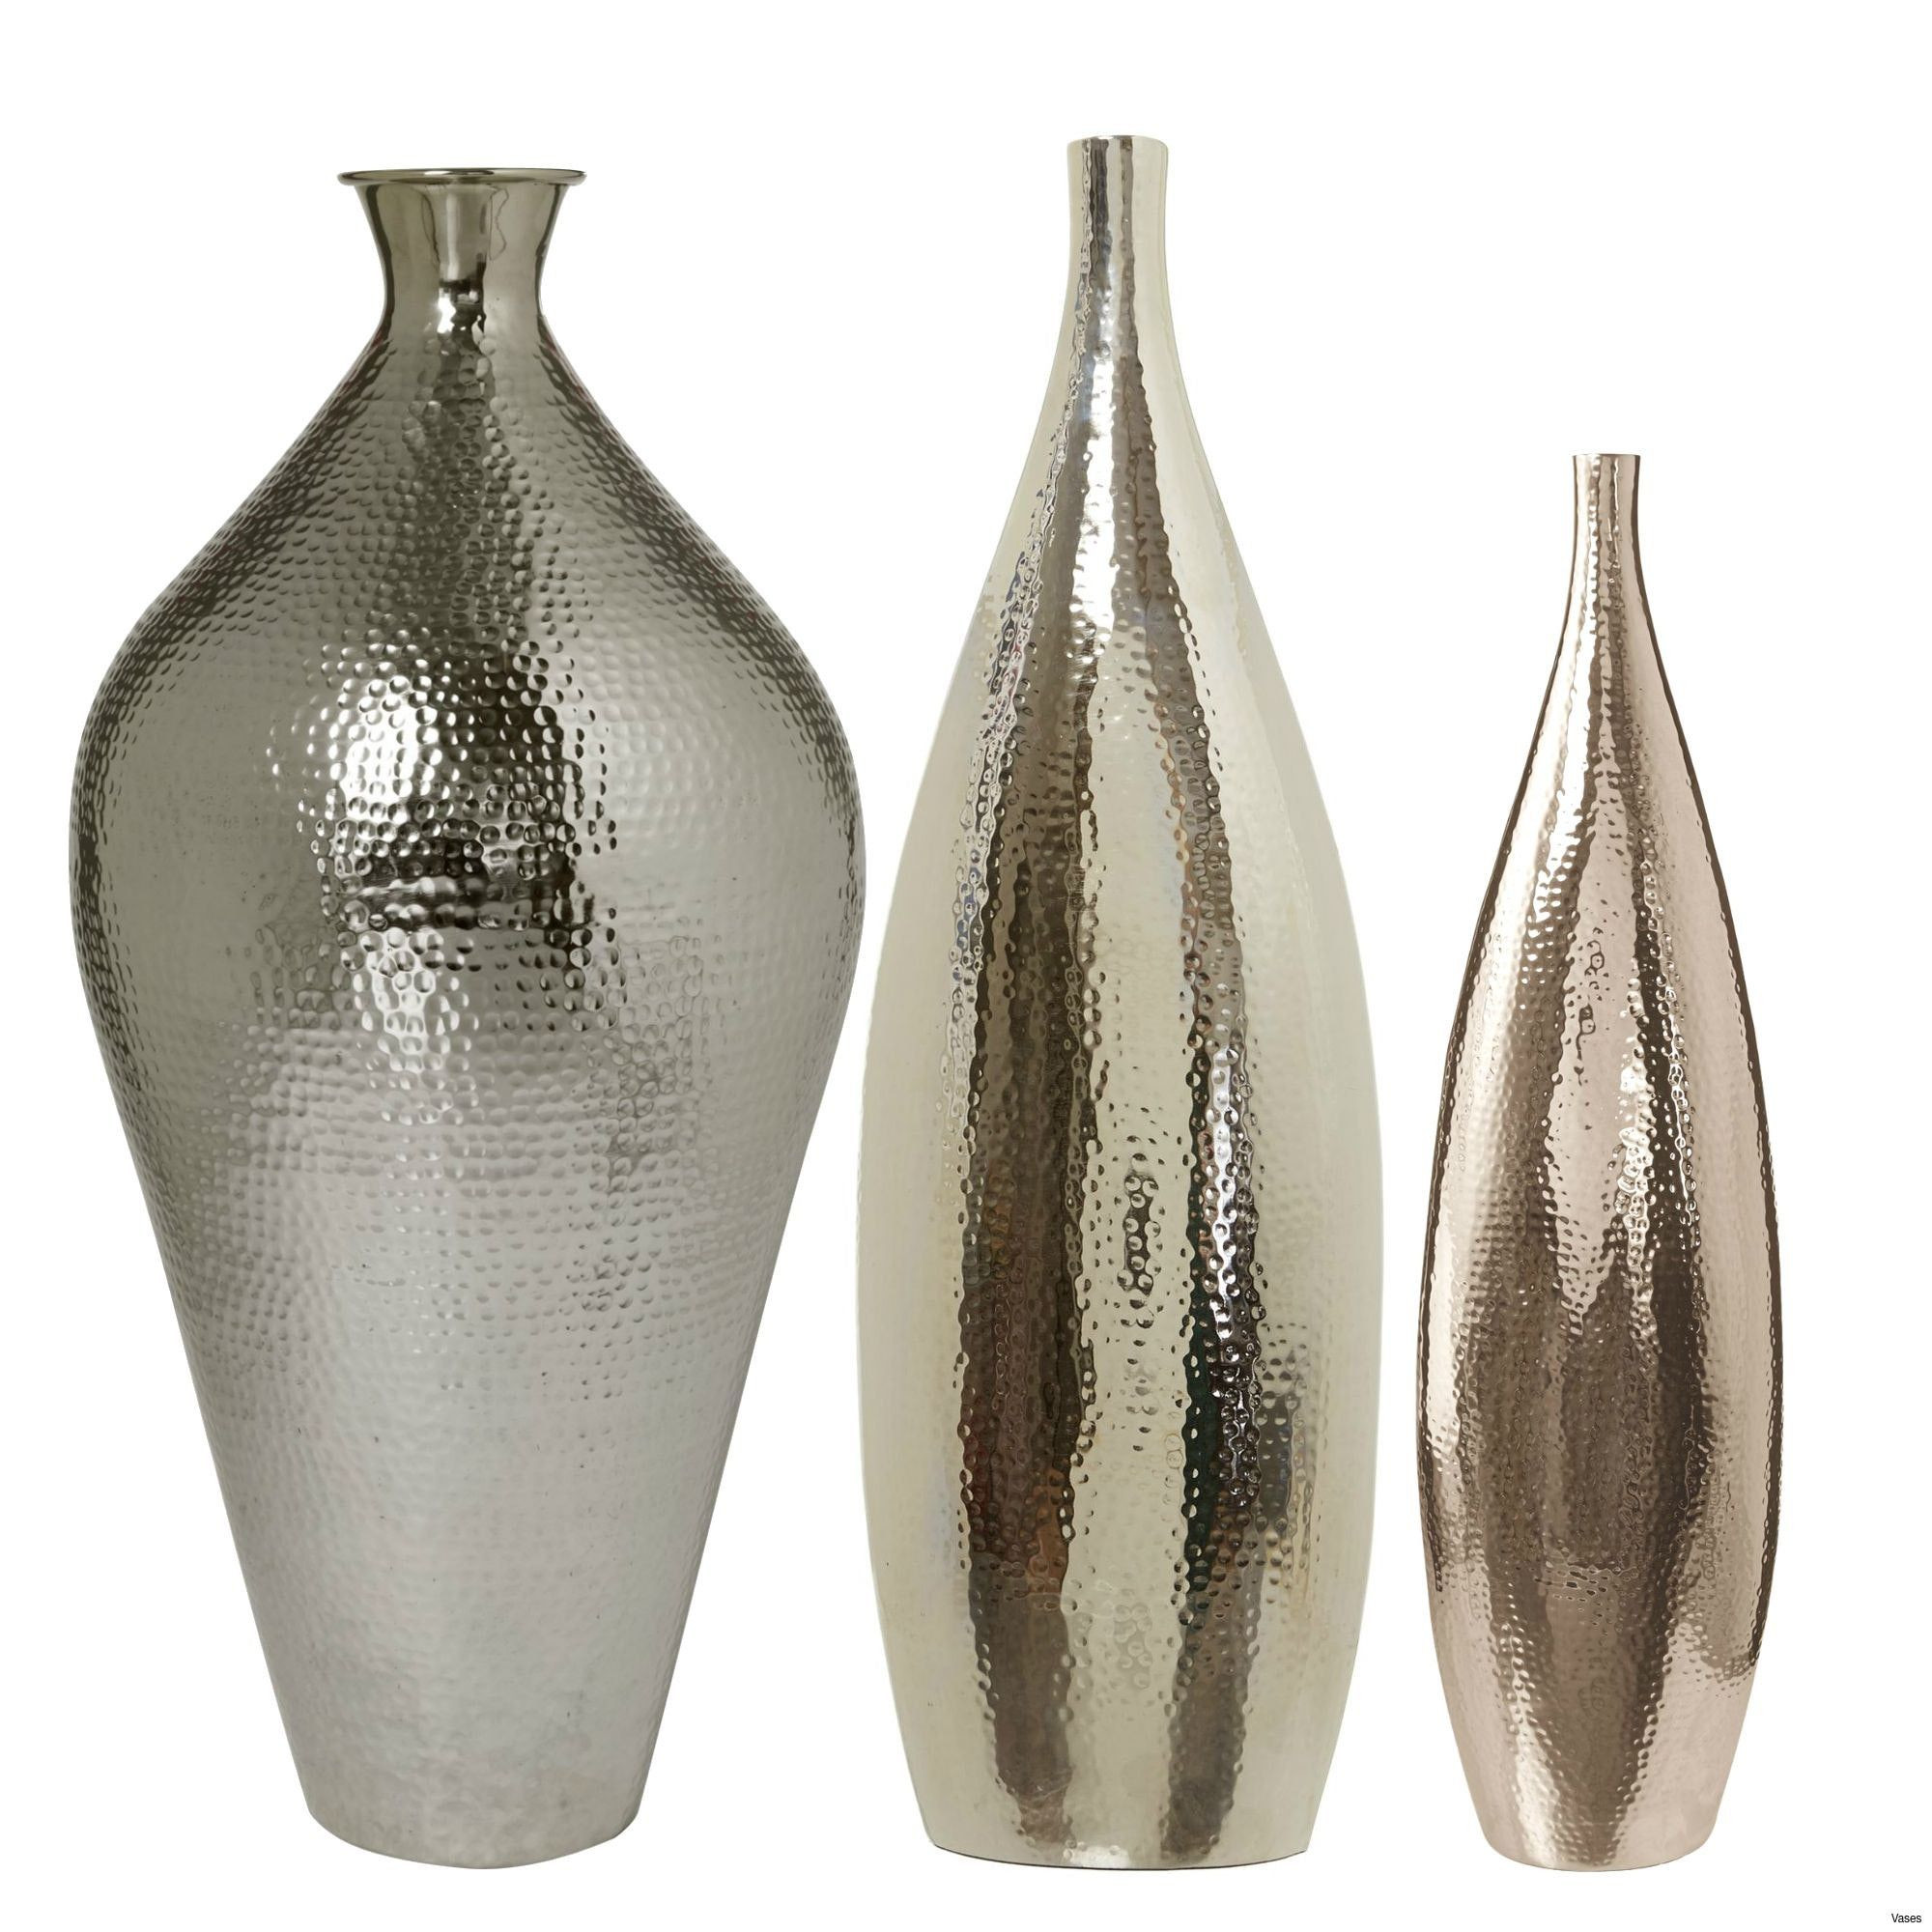 17 Great Murano Glass Vases for Sale 2021 free download murano glass vases for sale of 50 smoked glass vase the weekly world with regard to 32 unique metal vase